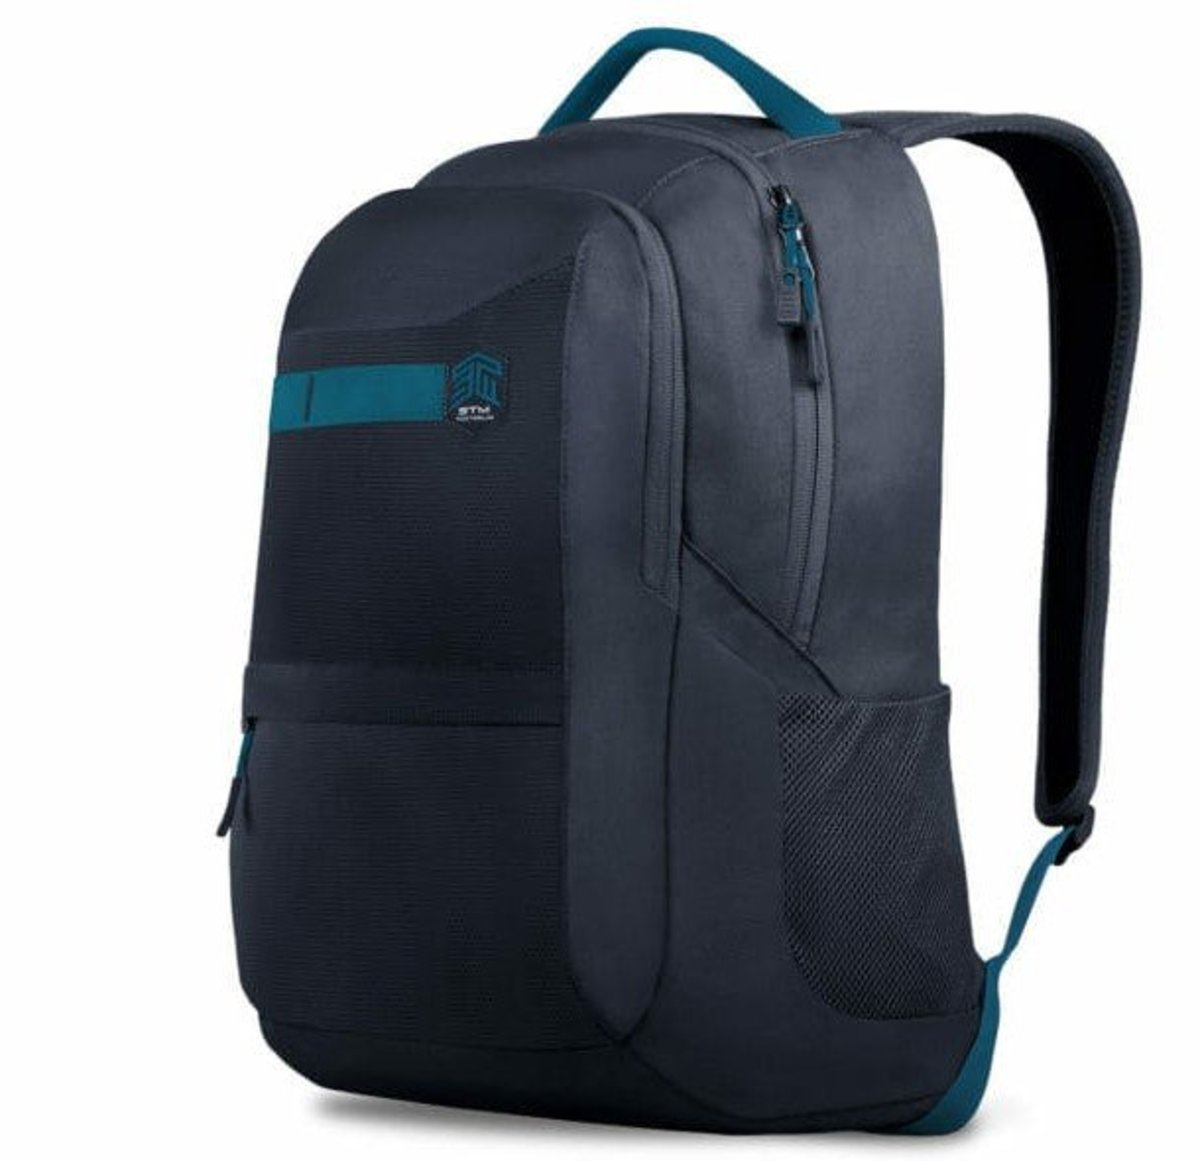 24L Trilogy Backpack NAVY 640 gram